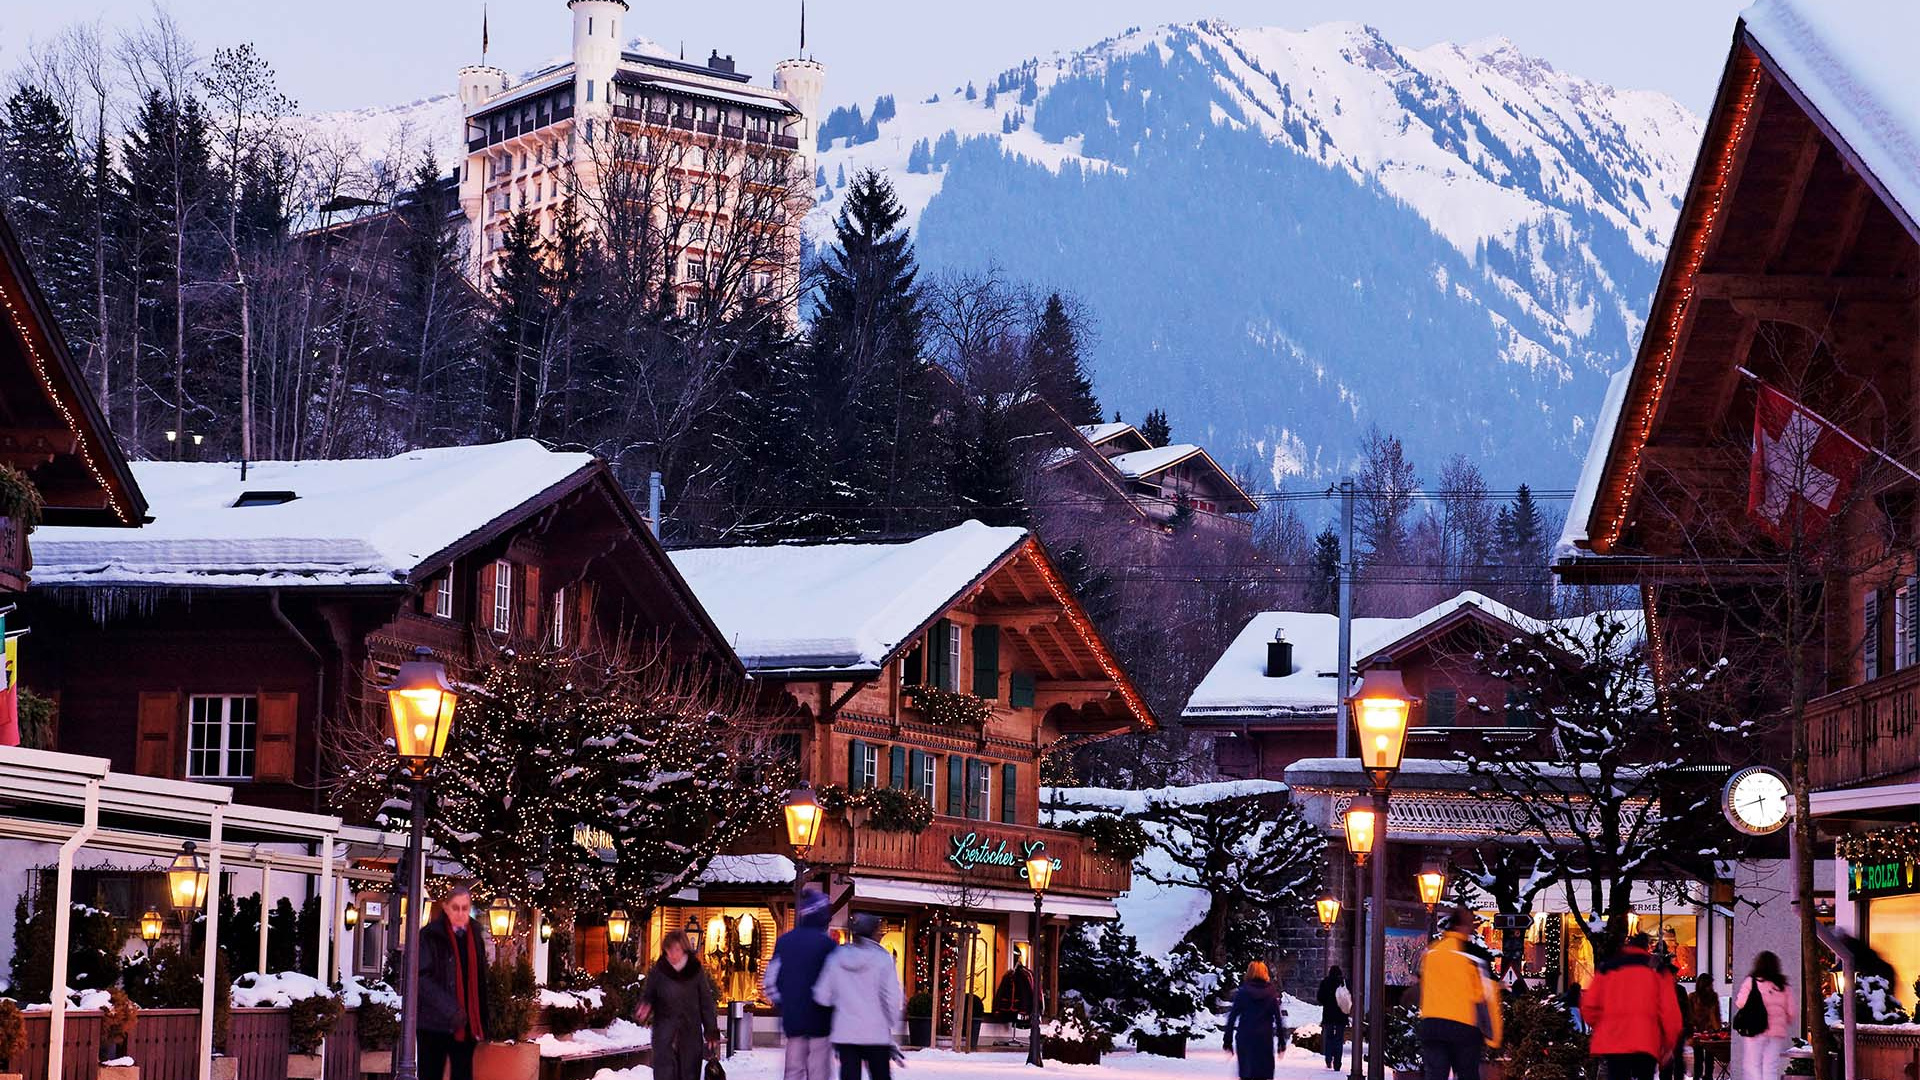 Palace Hotel, Gstaad